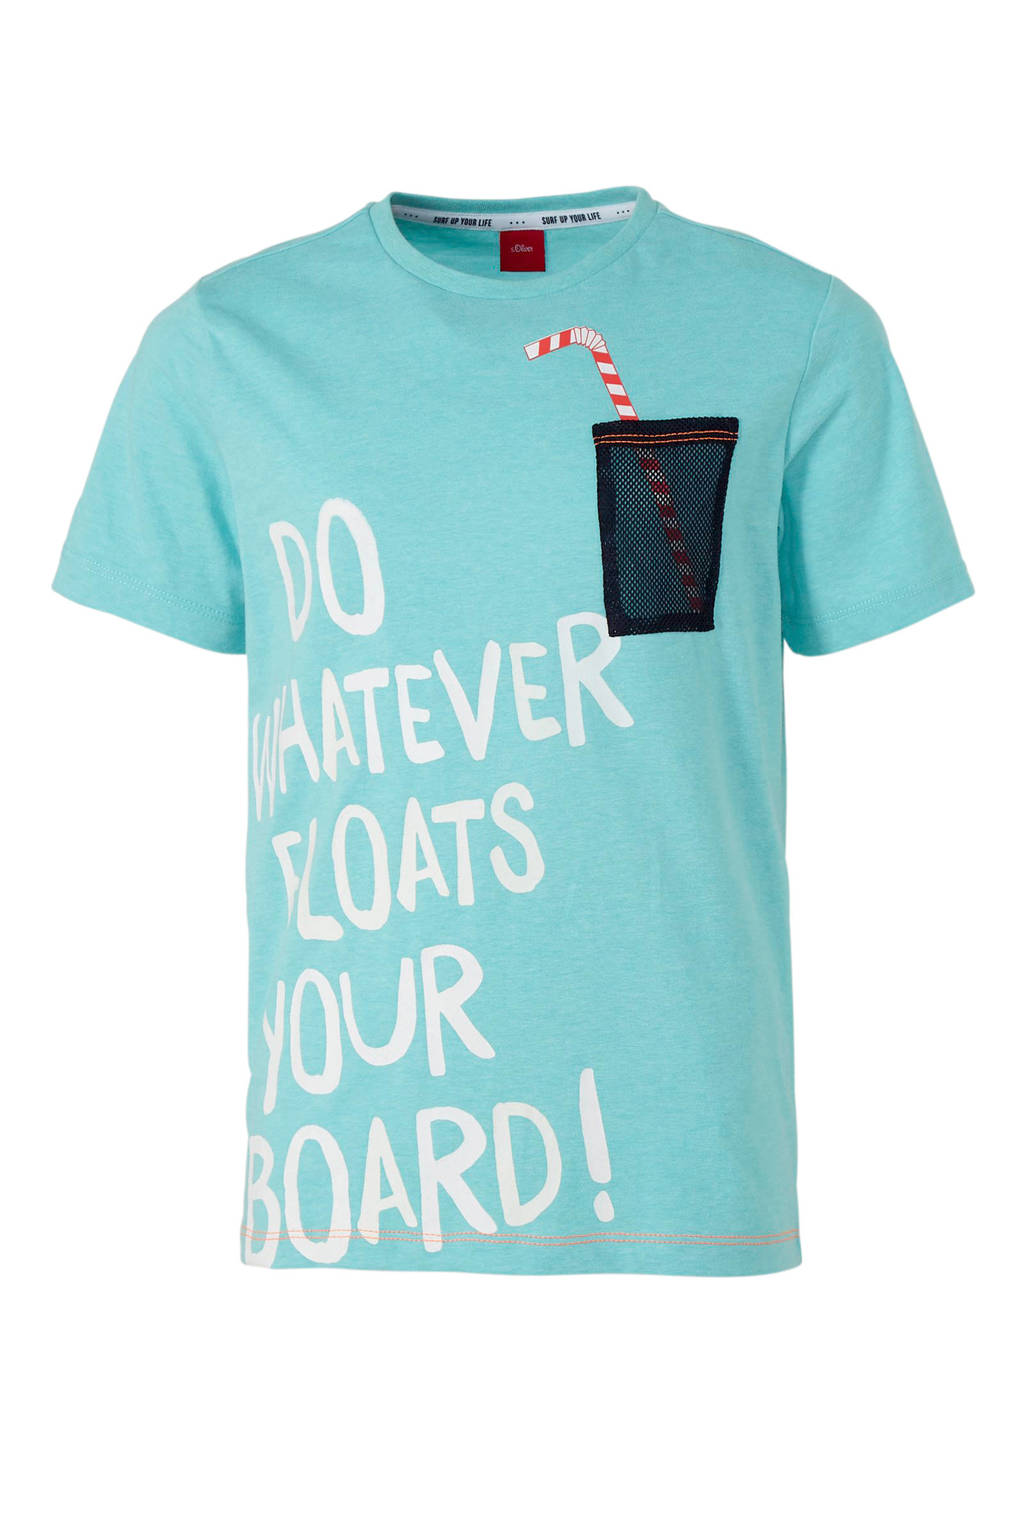 s.Oliver T-shirt met tekst turquoise, Turquoise/wit